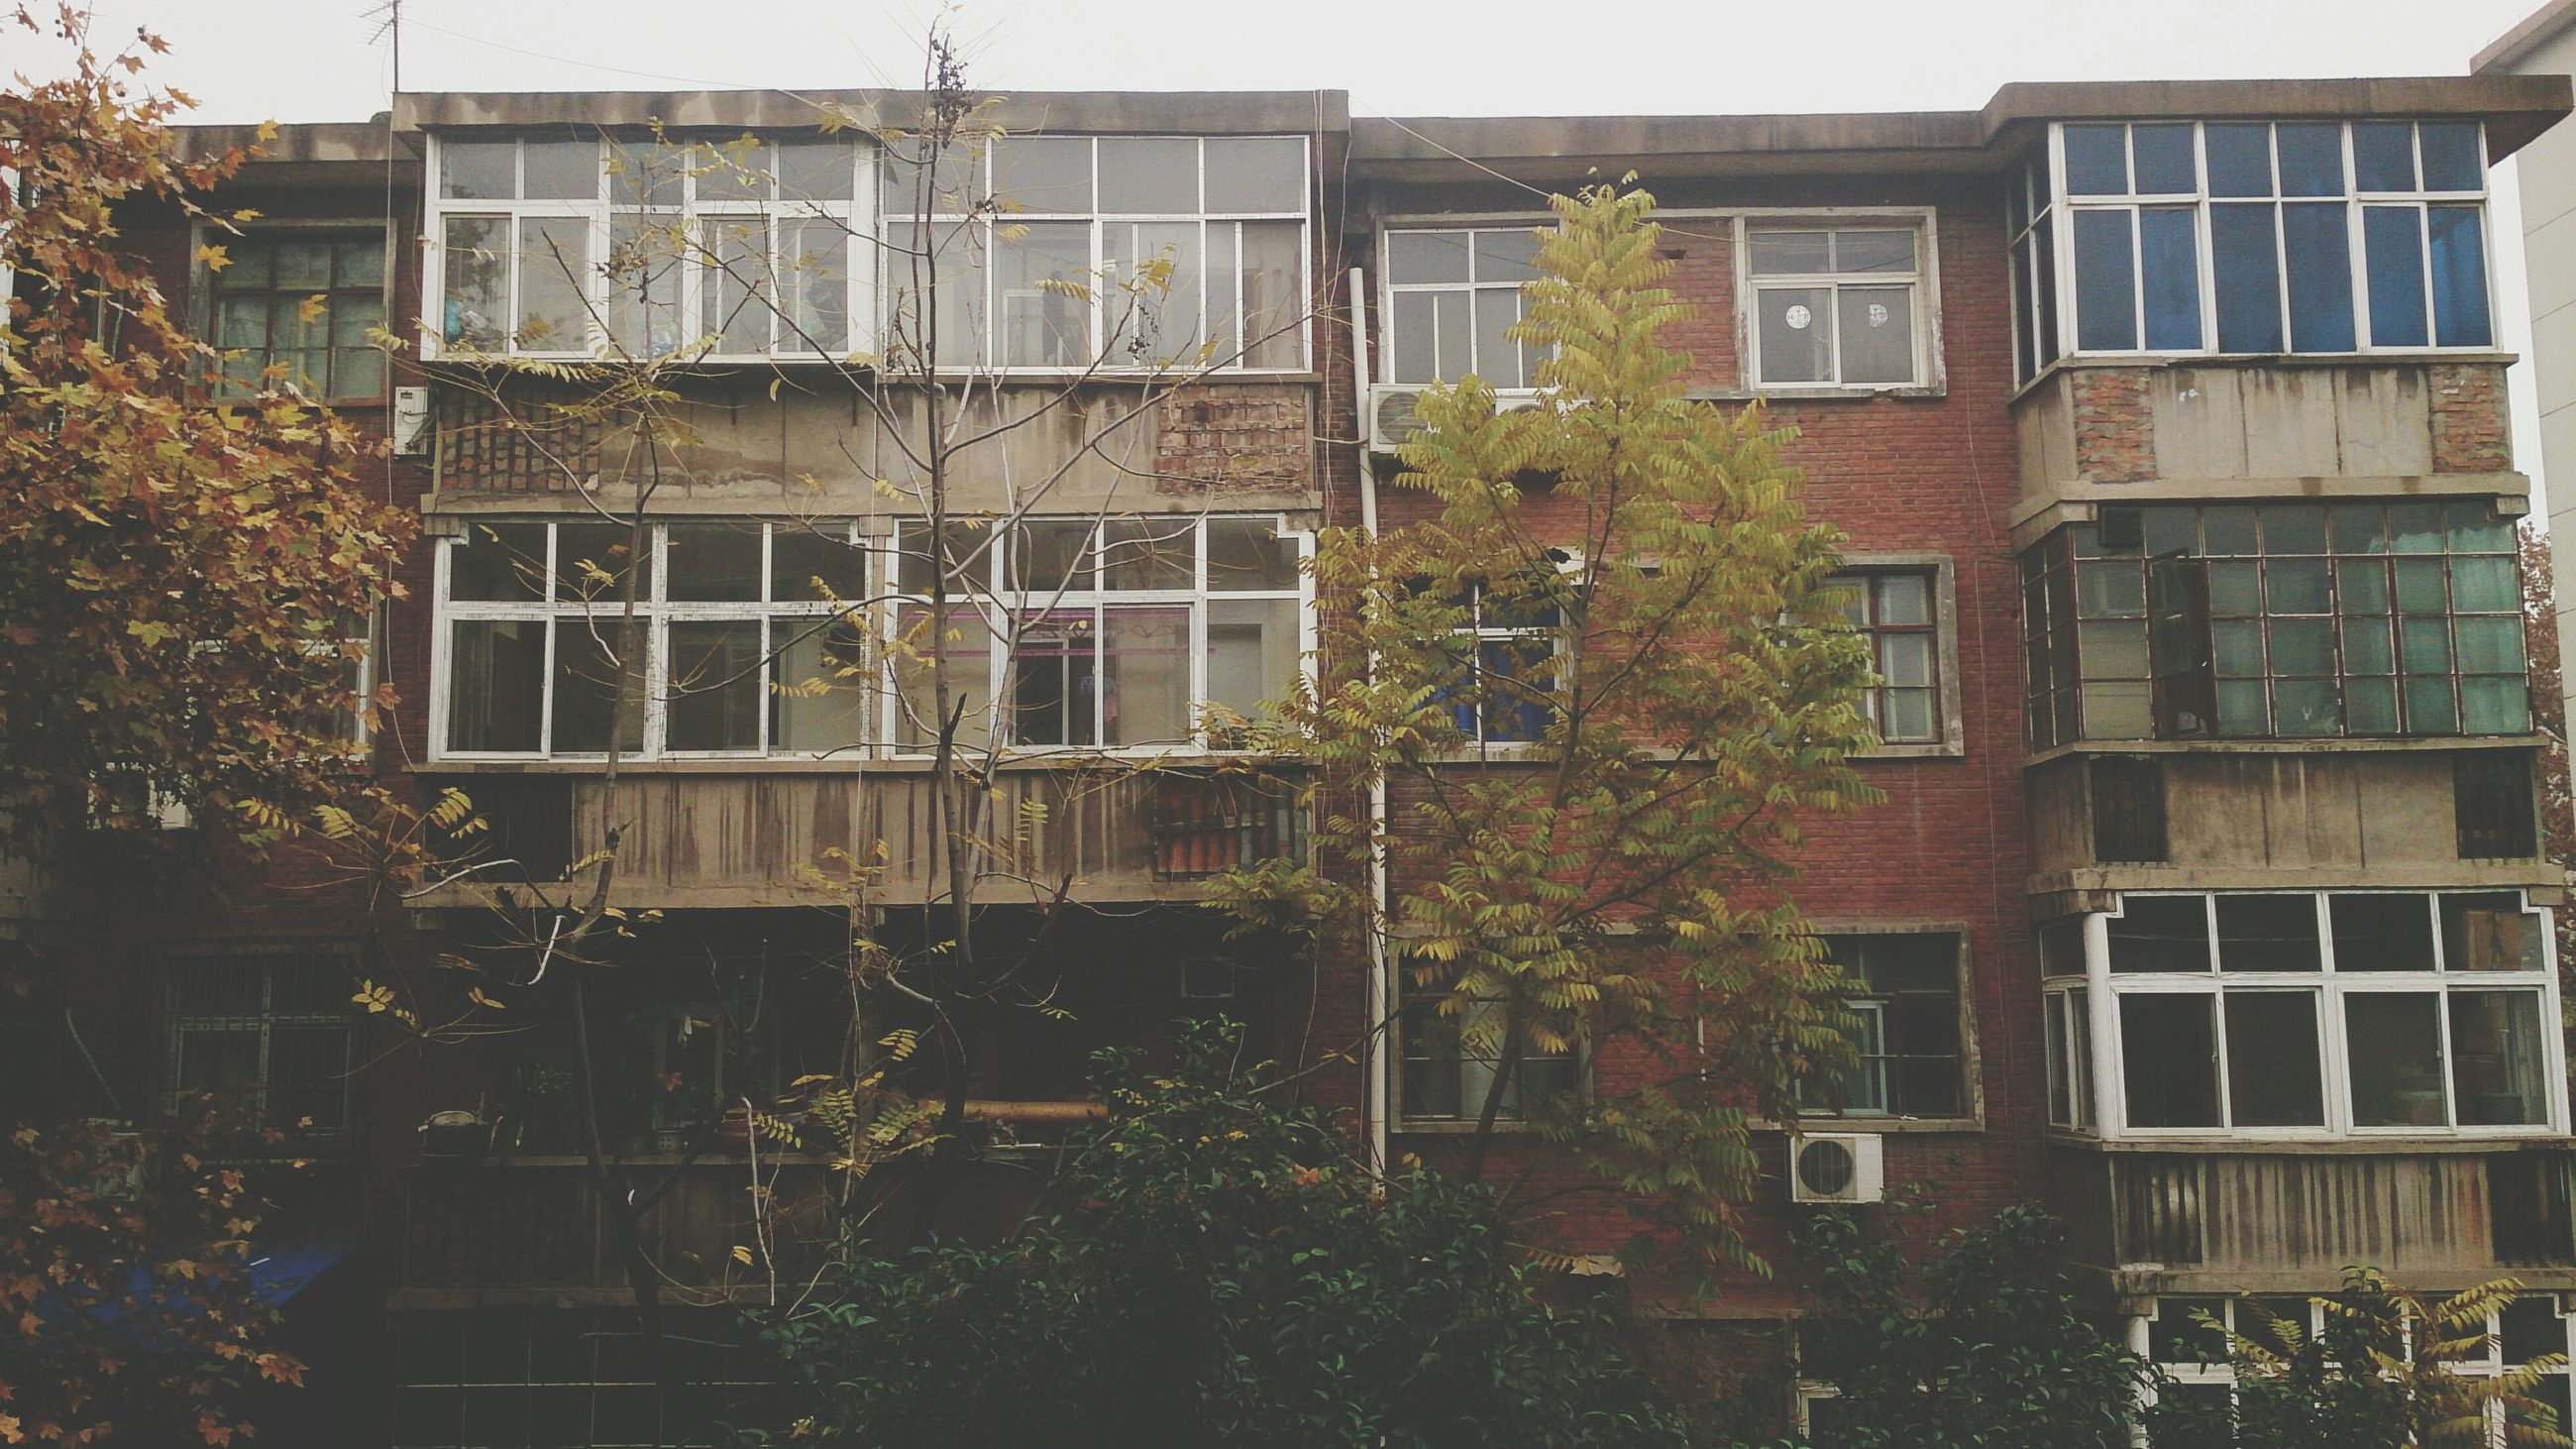 building exterior, architecture, built structure, window, residential building, building, residential structure, house, city, tree, apartment, day, low angle view, outdoors, plant, balcony, no people, growth, ivy, exterior